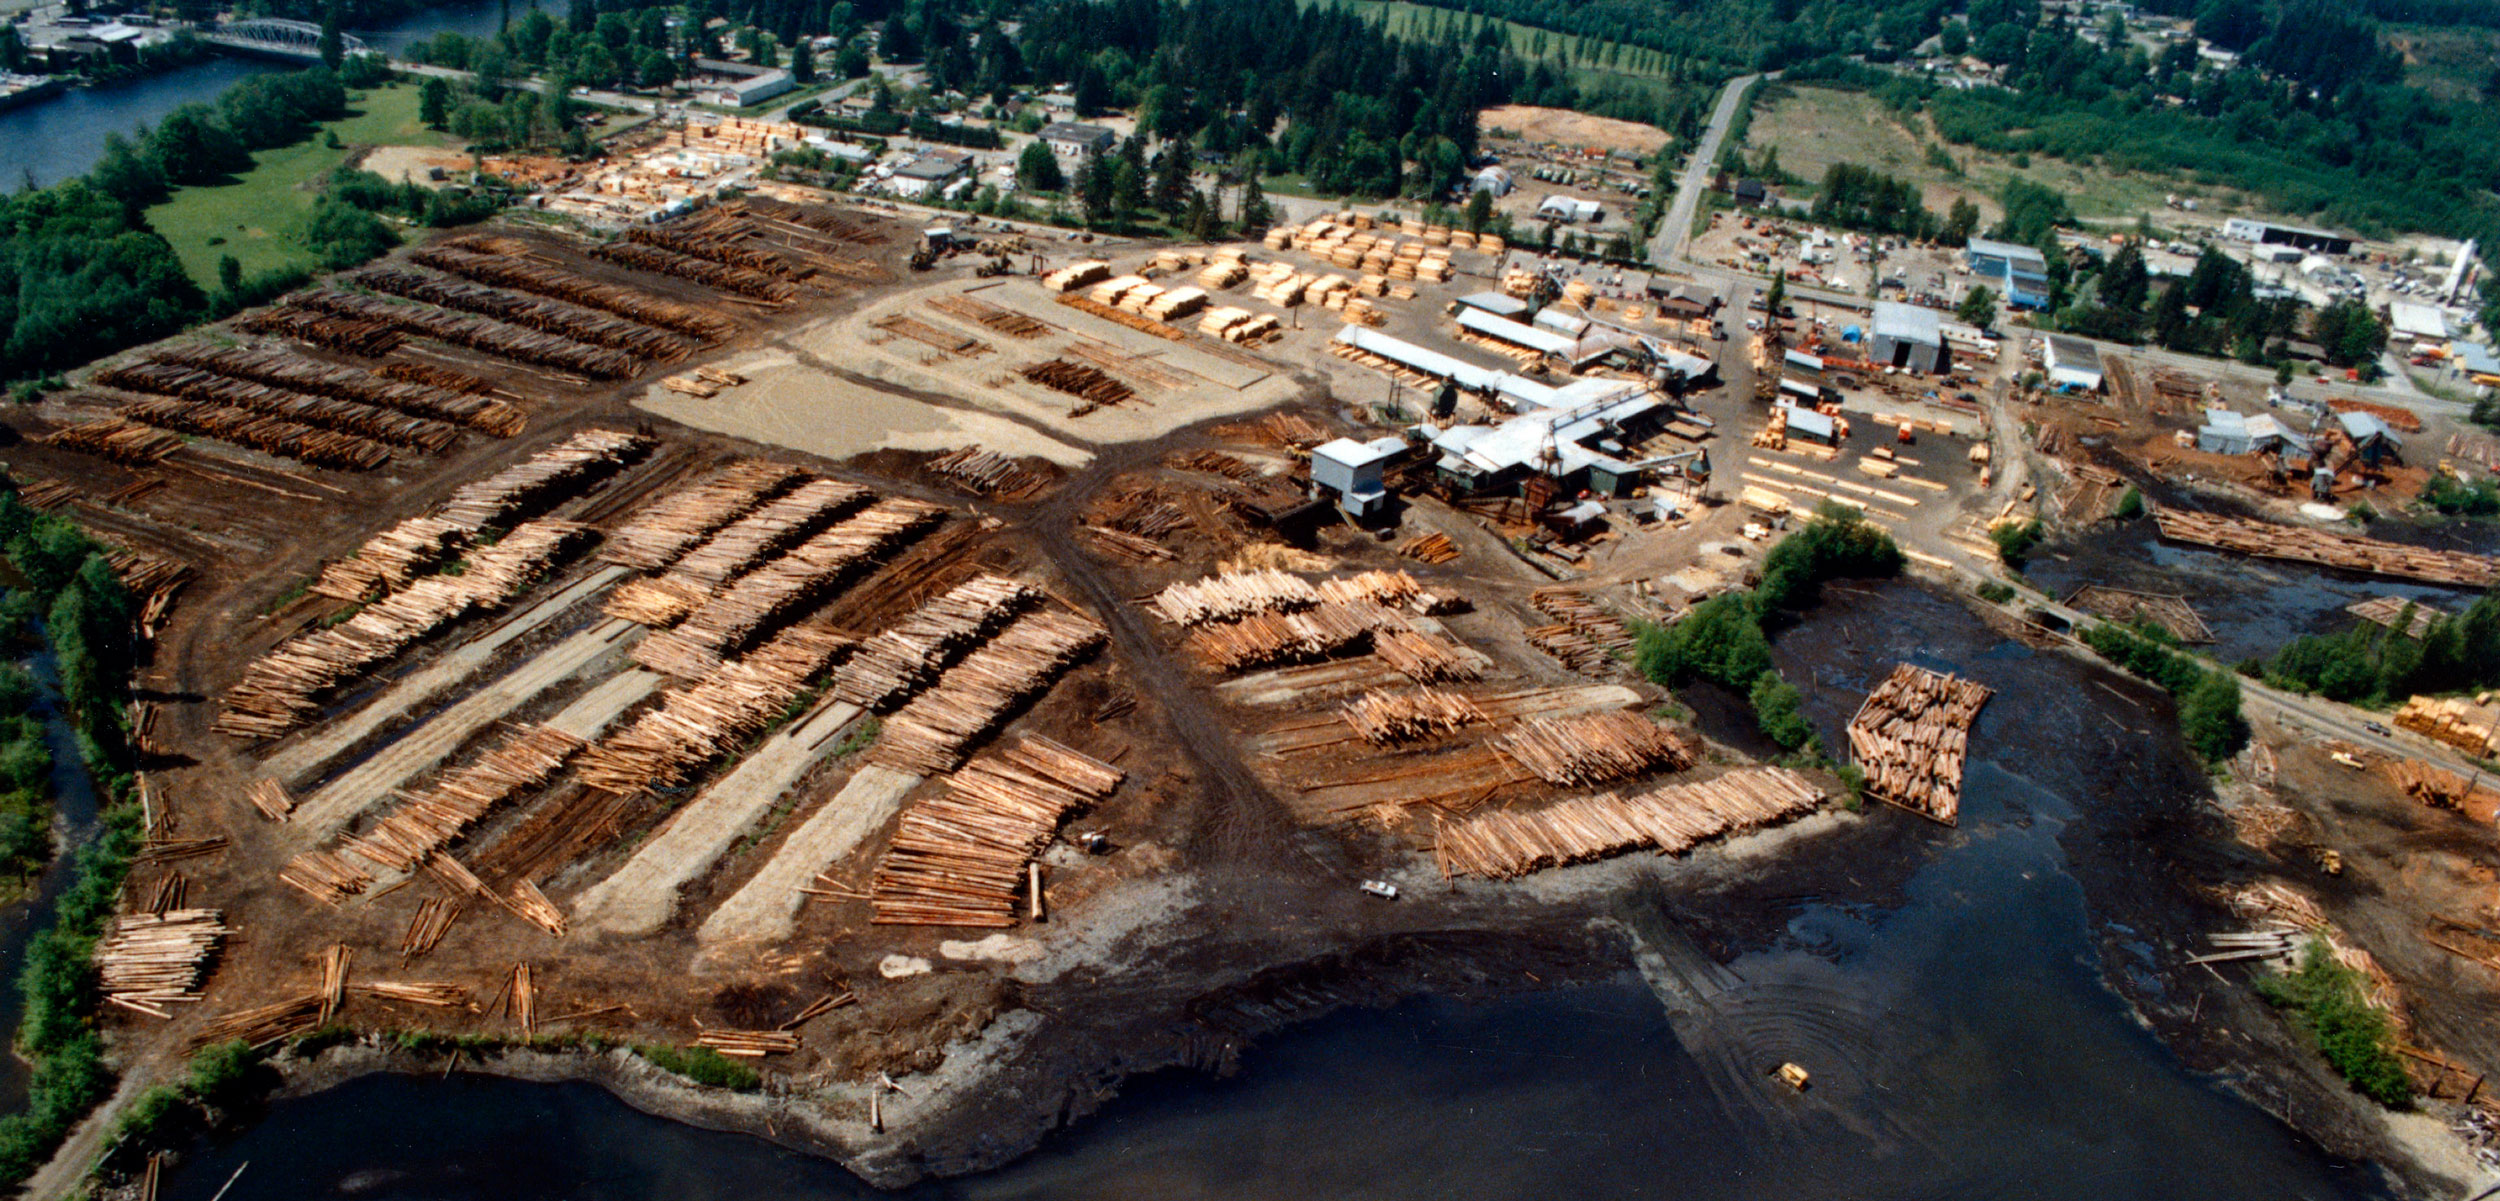 The Campbell River estuary on Vancouver Island was an ideal location for a sawmill—but heavy industrial use took an obvious toll on the ecosystem. Photo courtesy of the Museum at Campbell River (catalog number 1245)